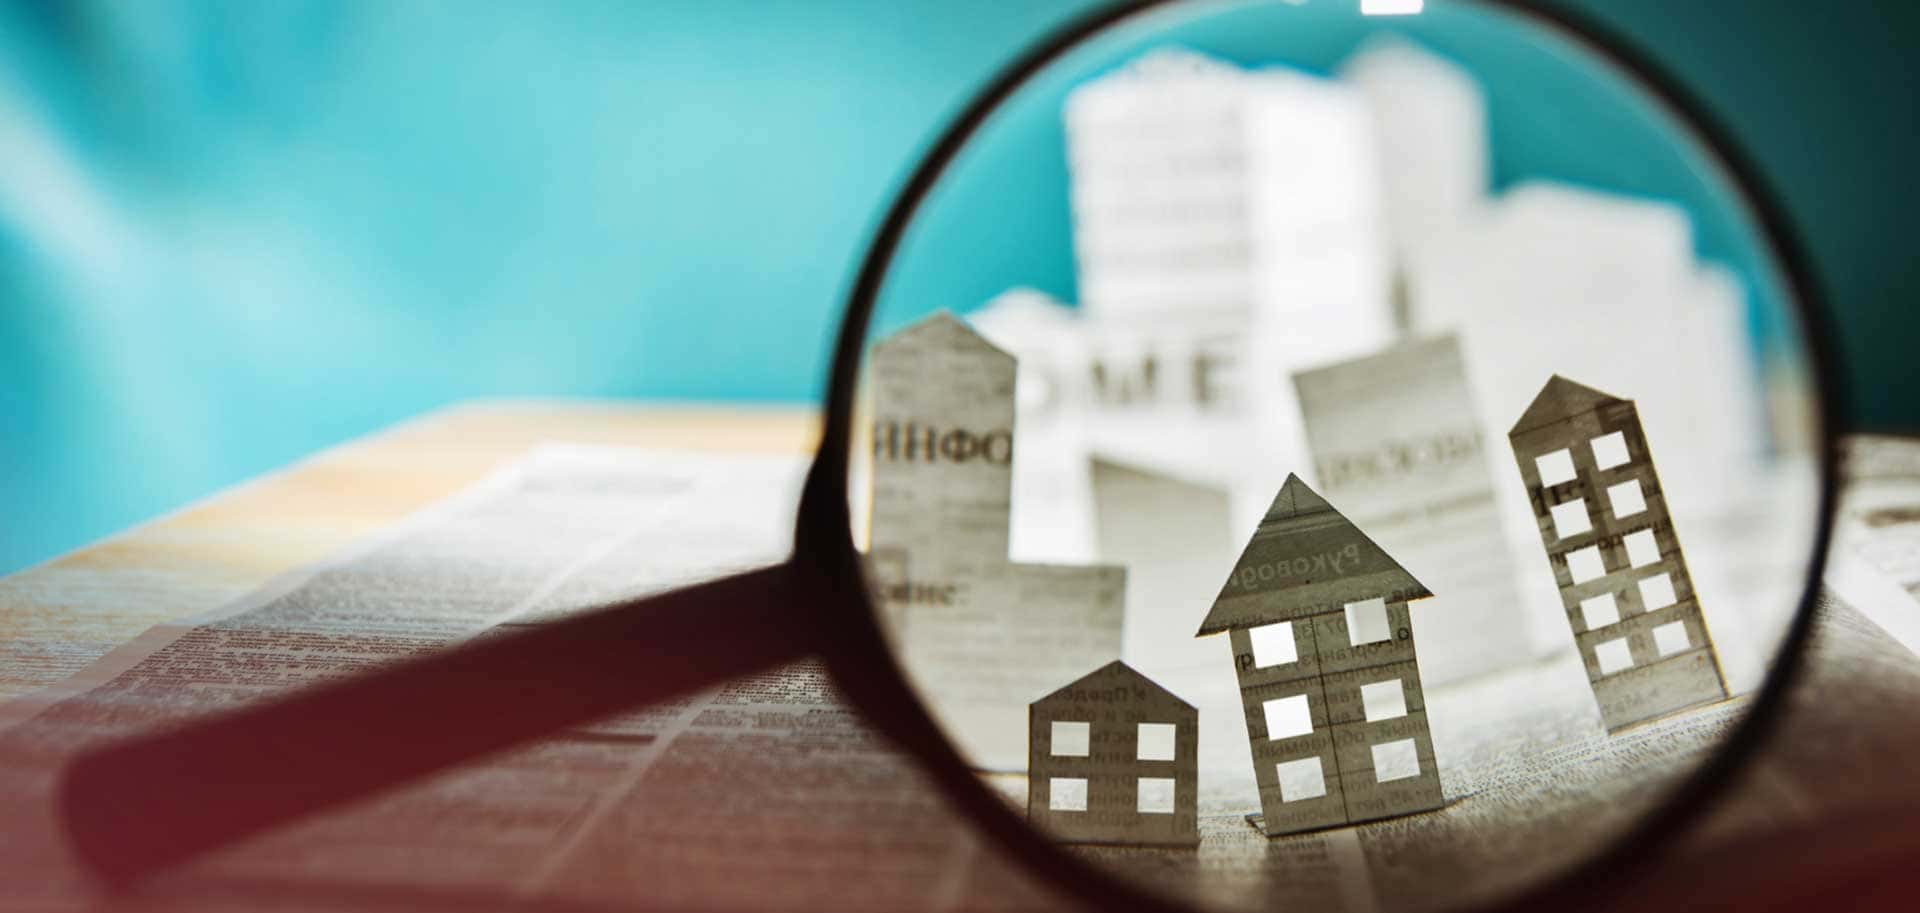 Magnifying glass over paper homes, indicating the discovery of a new house